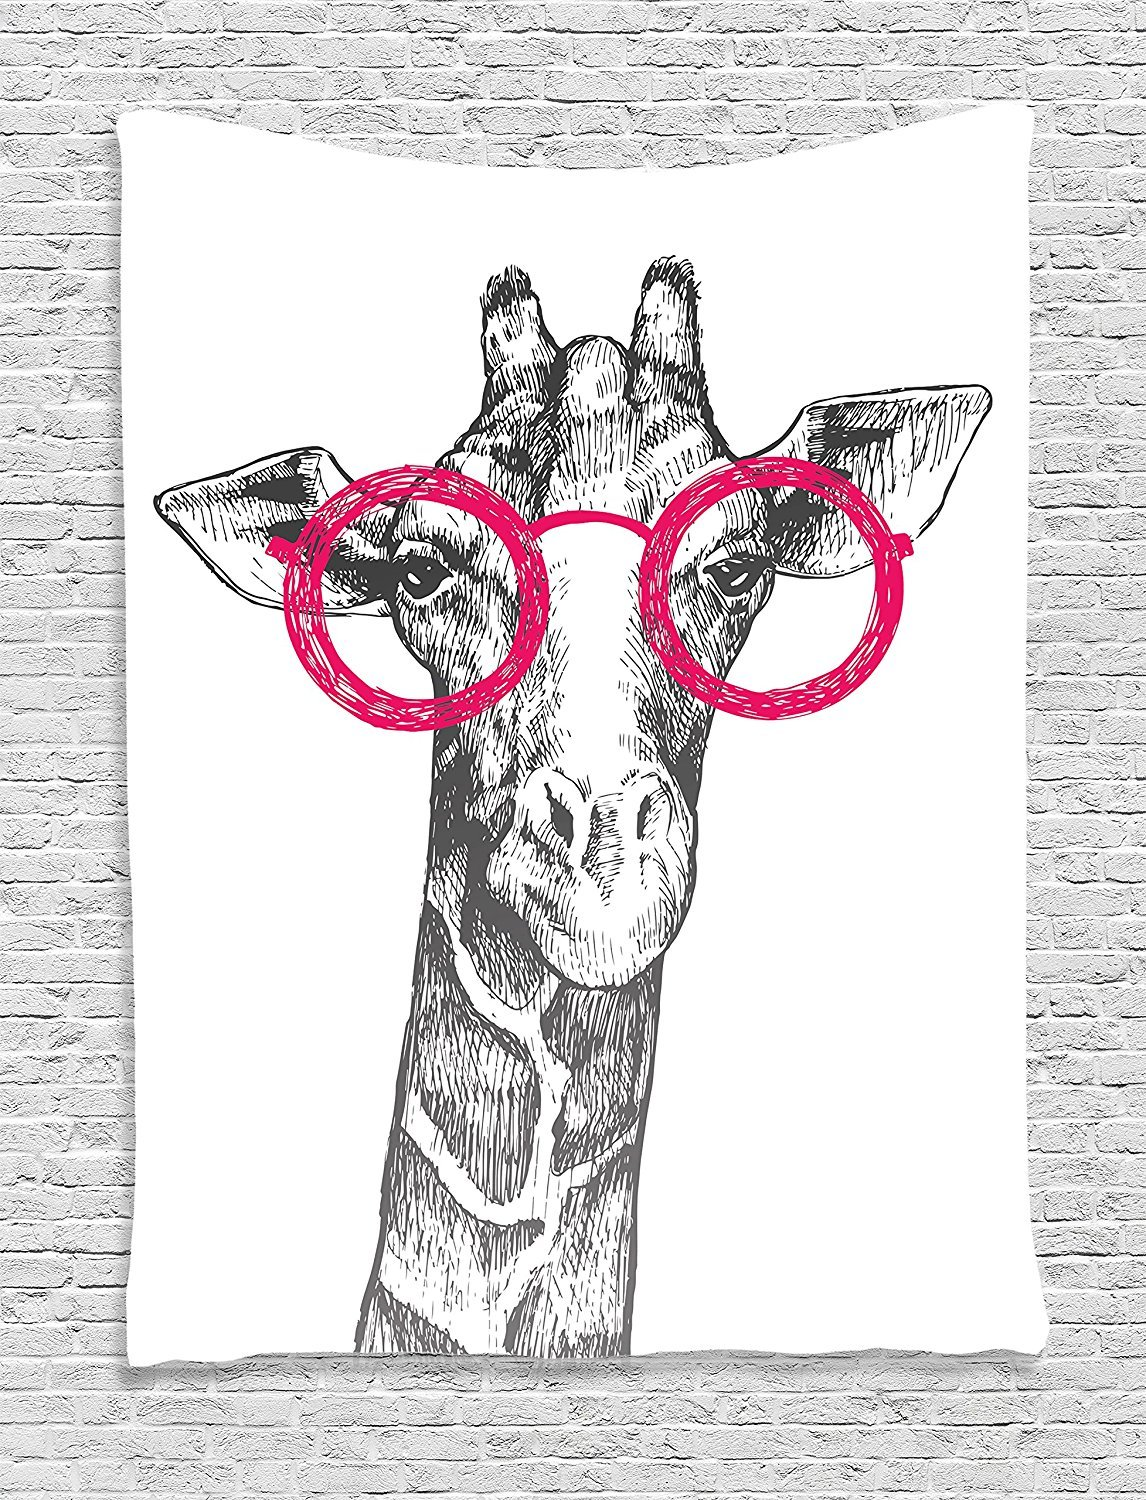 asddcdfdd Funny Decor Tapestry, Cute Hipster Animal Retro Fashion Round Glasses Summer Time Love Hand Drawn Style Print, Bedroom Living Room Dorm Decor, 40 W x 60 L Inches, White Pink